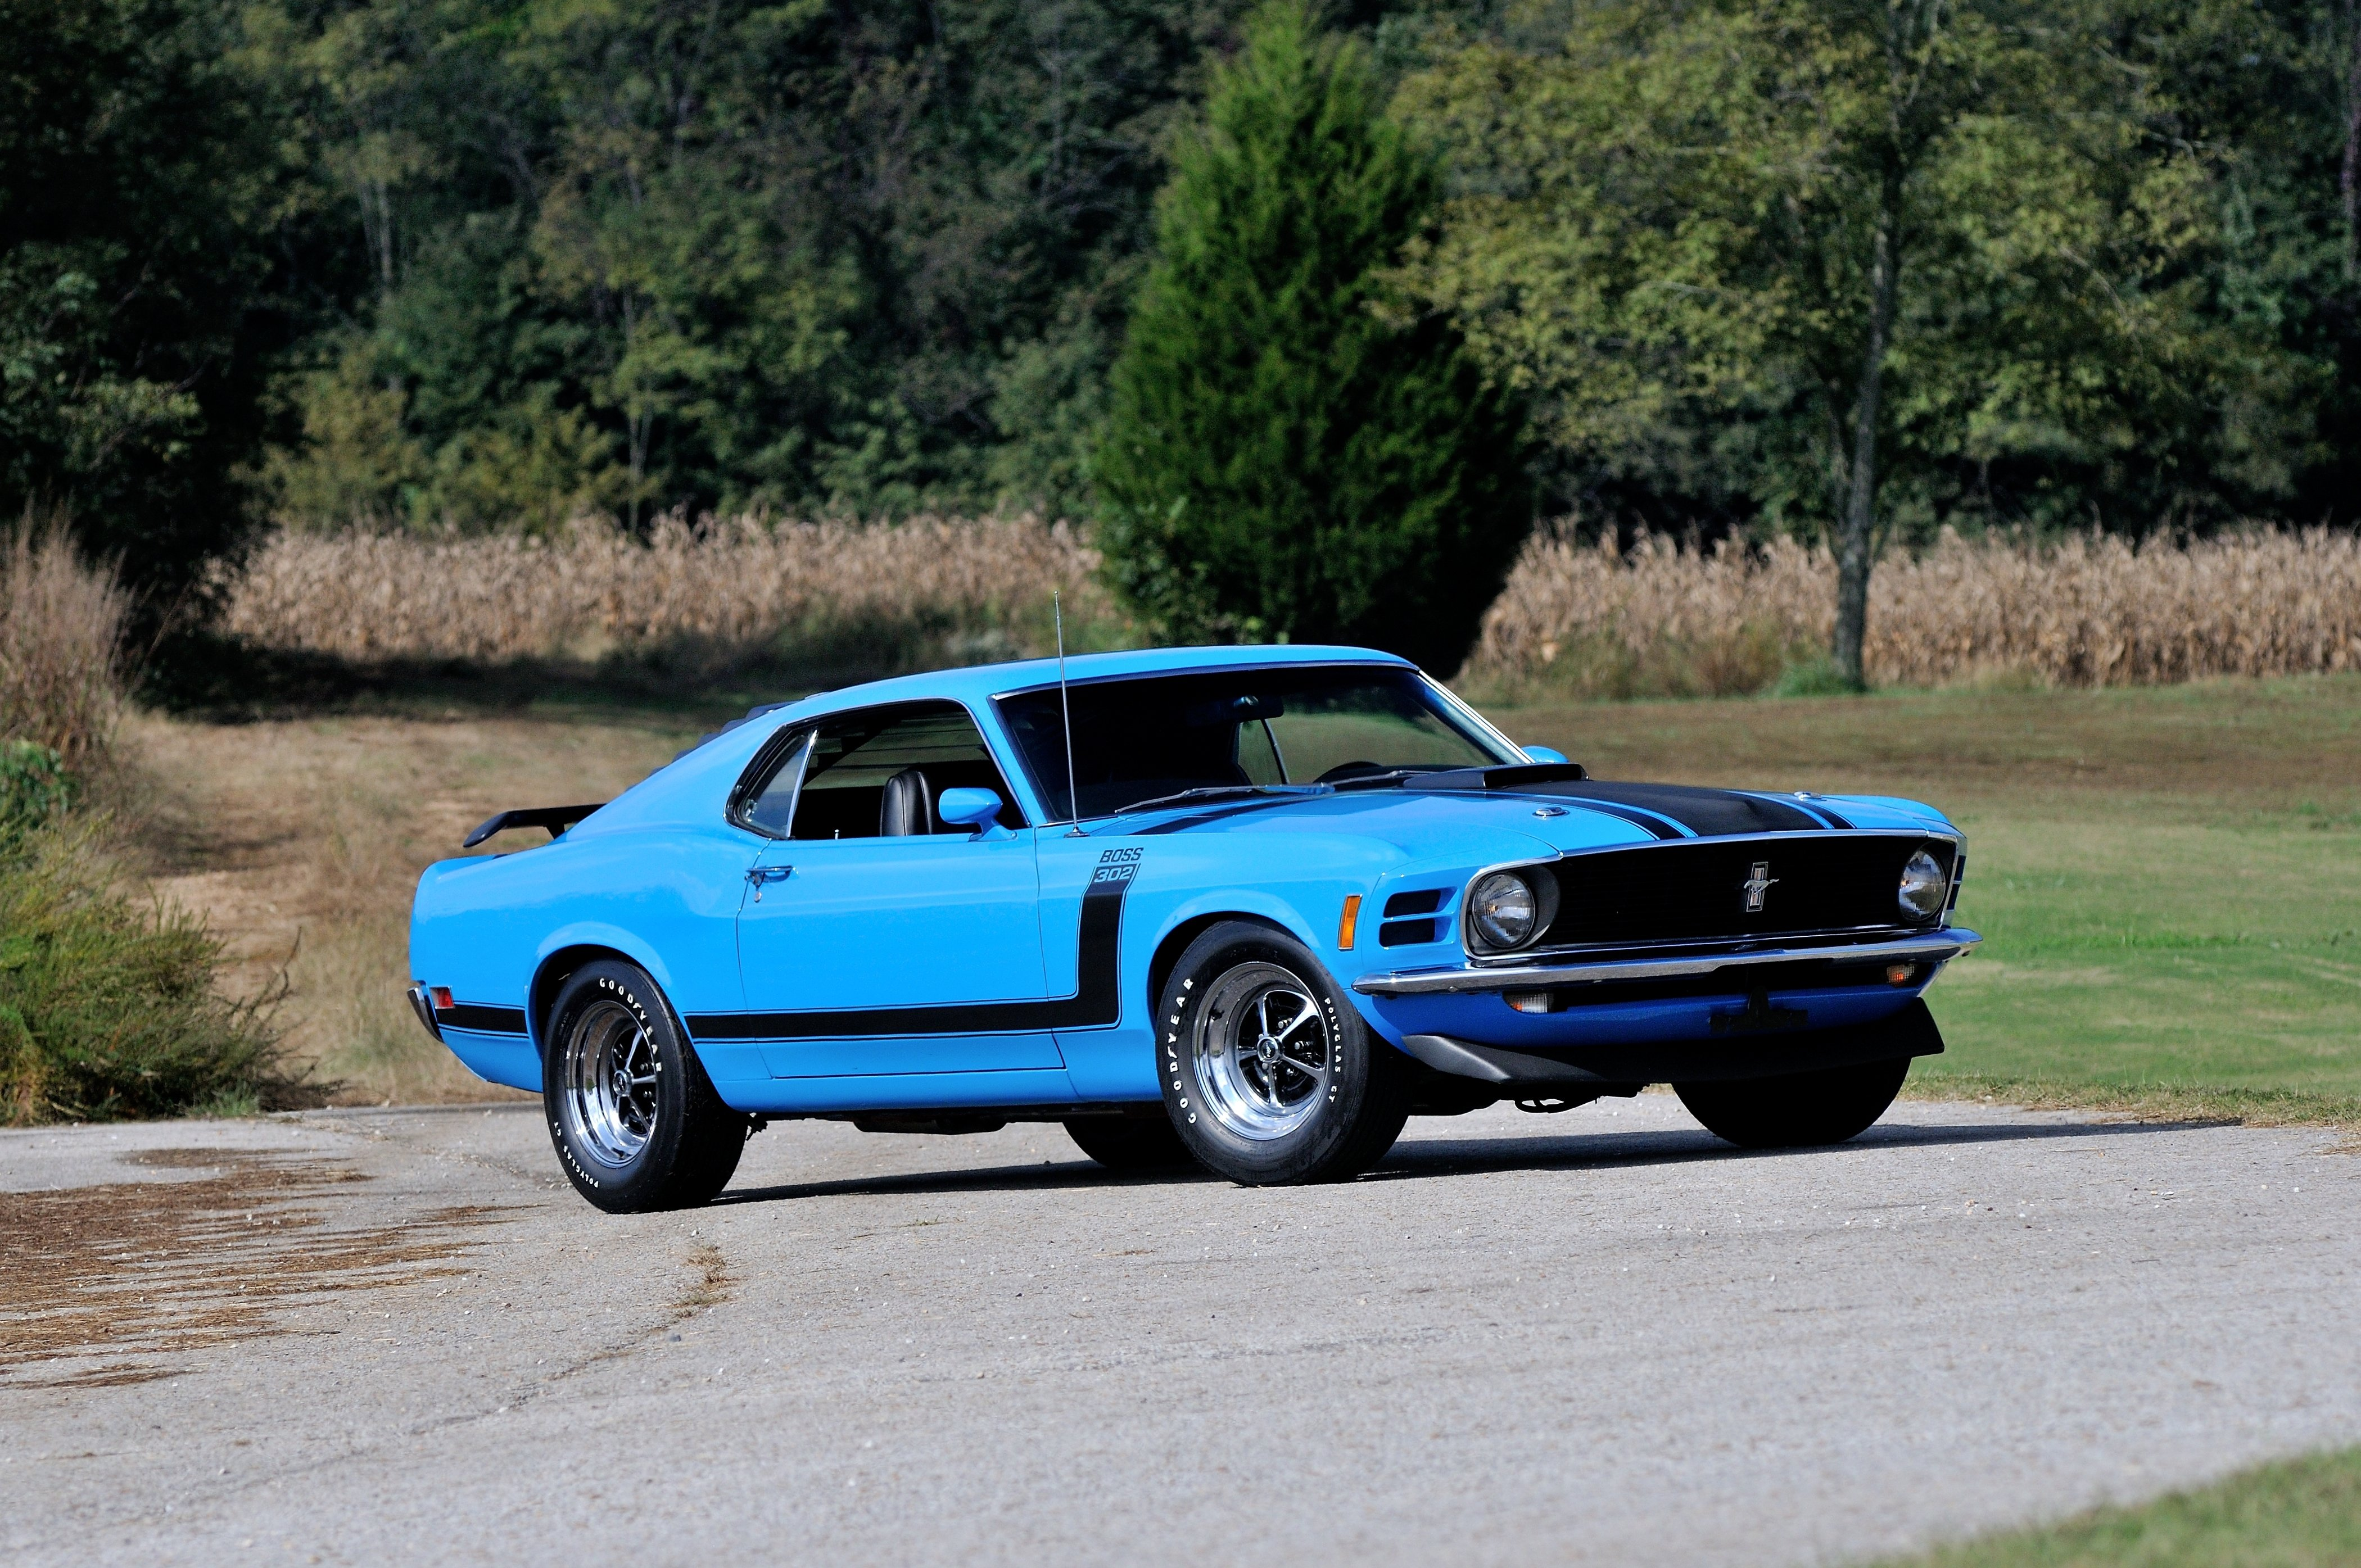 1970 Ford Mustang Boss 302 Fastback Muscle Classic Usa 4200x2790 05 Gt Wallpaper 647533 Wallpaperup